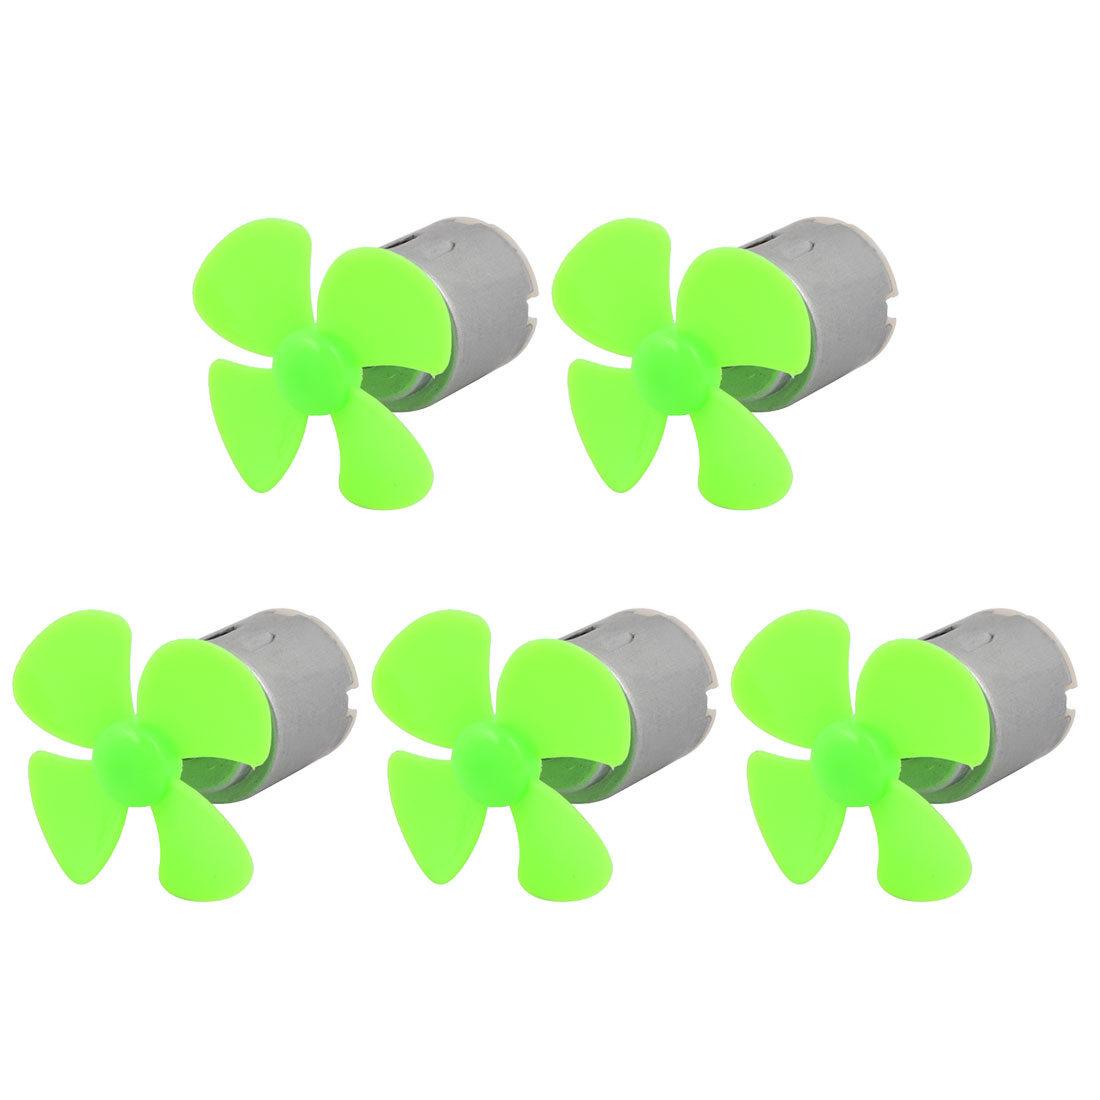 5Pcs DC 5V 5000RPM Large Torque Motor 4-Vane 40mm Dia Propeller Green for RC Model